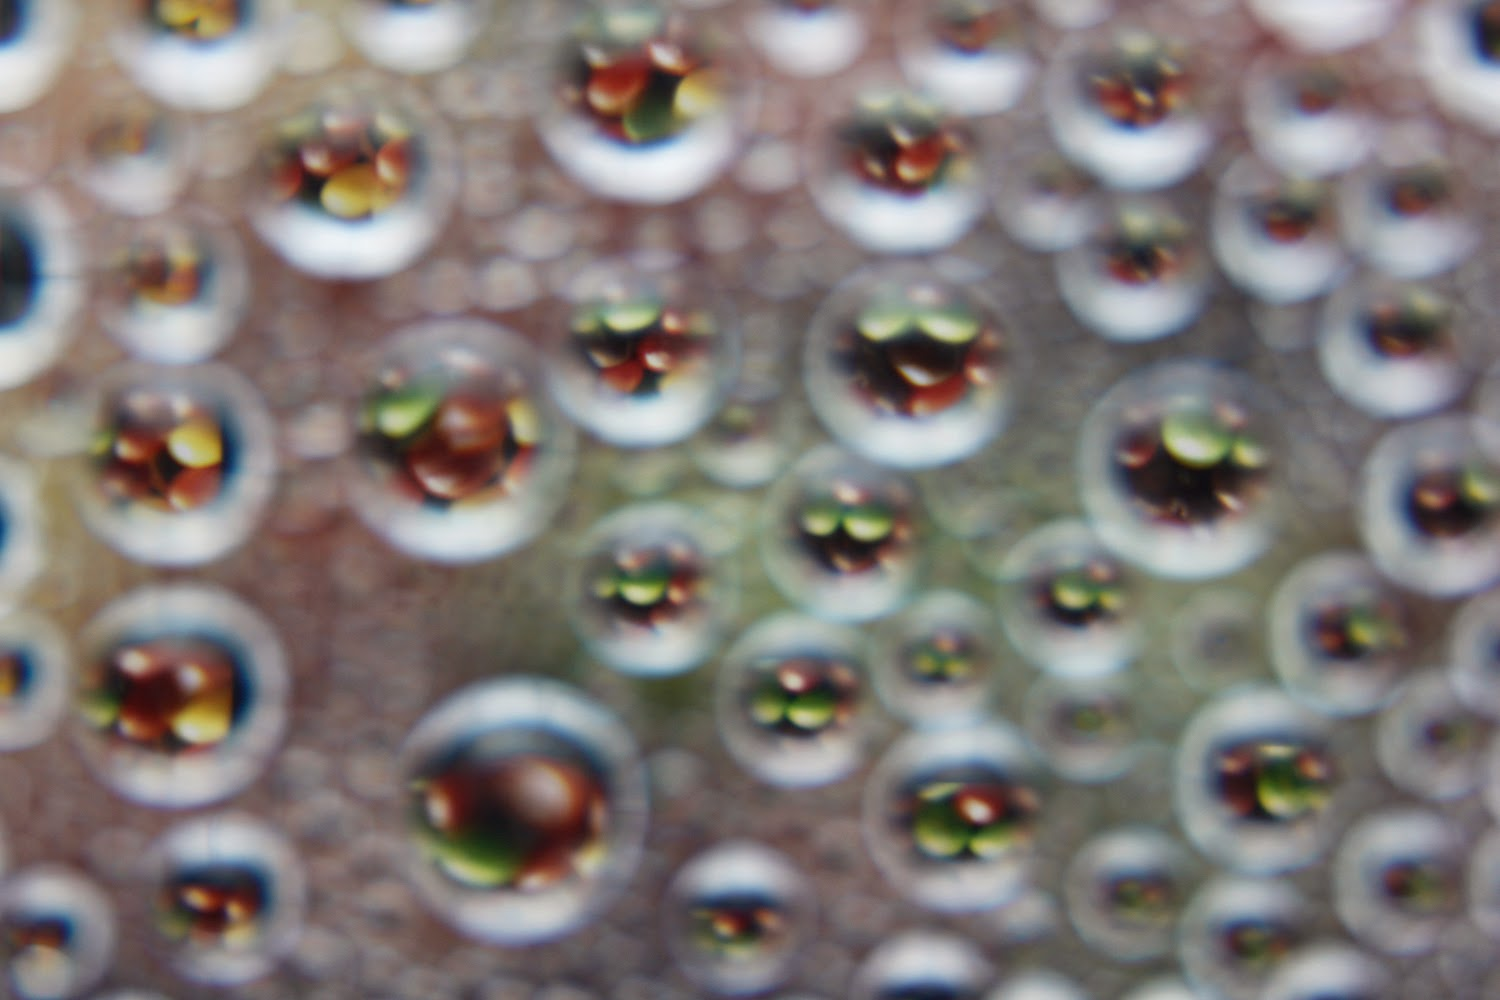 Unfocused Droplet Refraction | Boost Your Photography